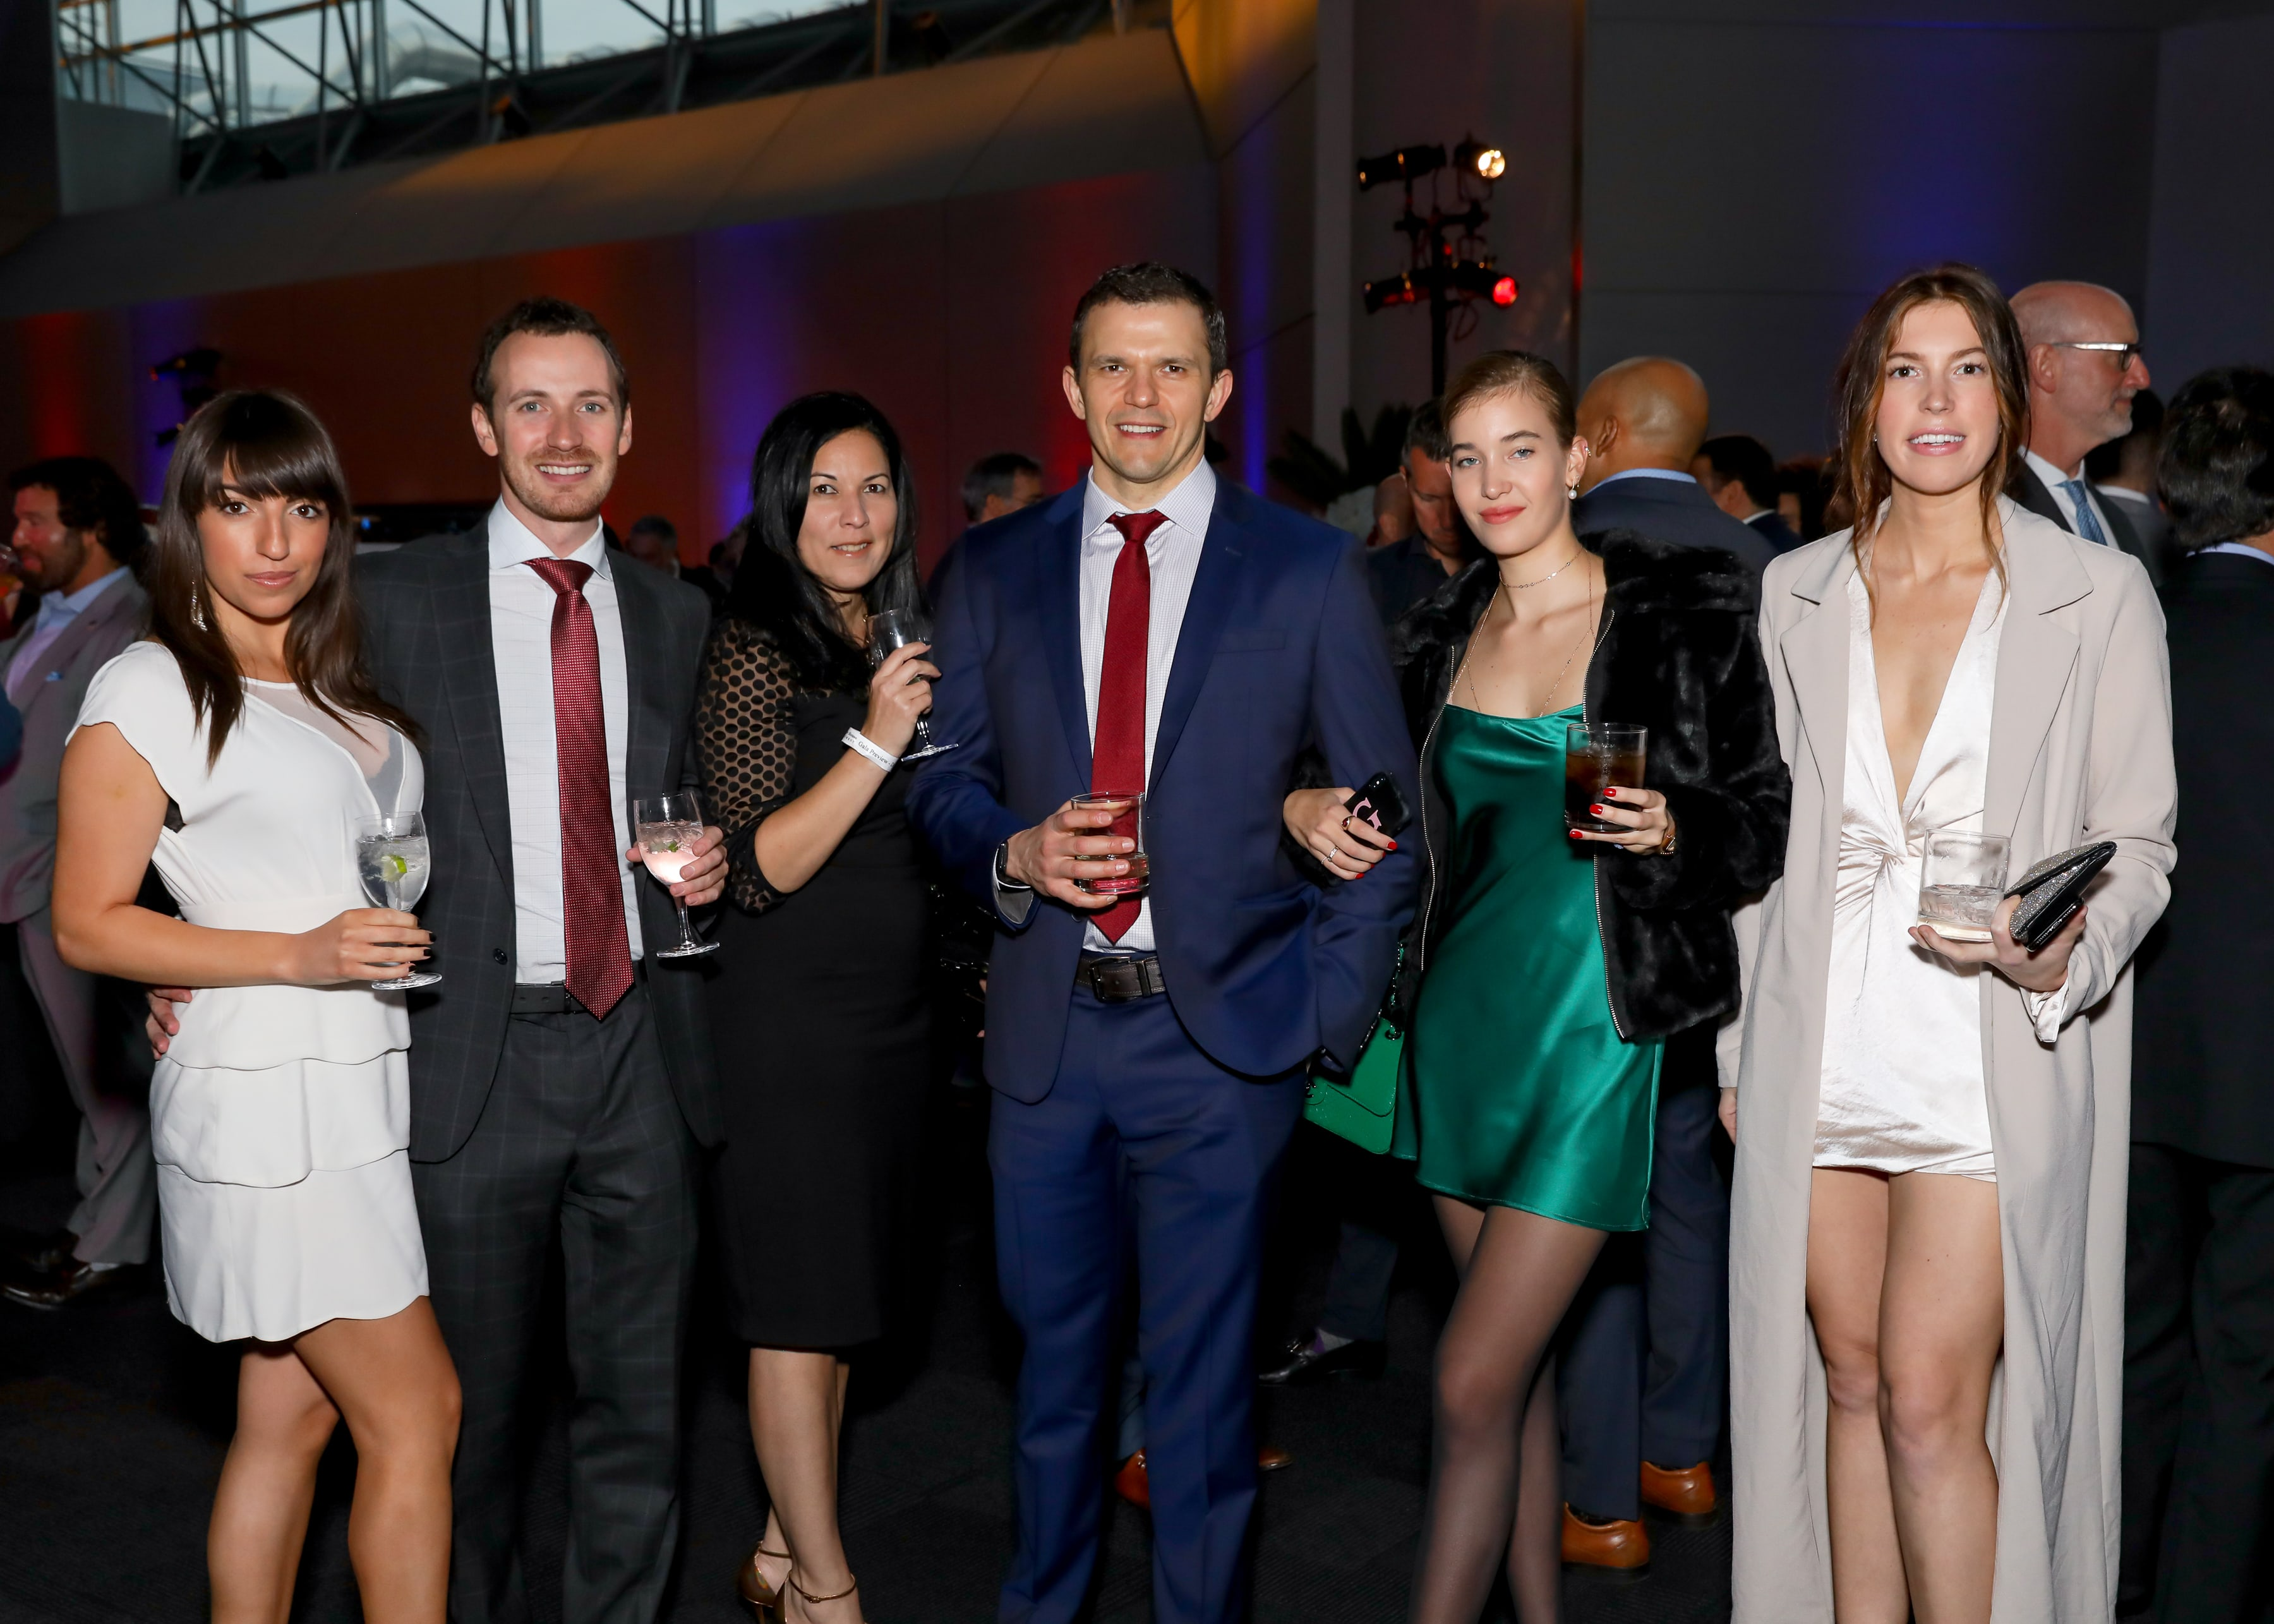 Photos: 20th Anniversary Gala Preview of the New York